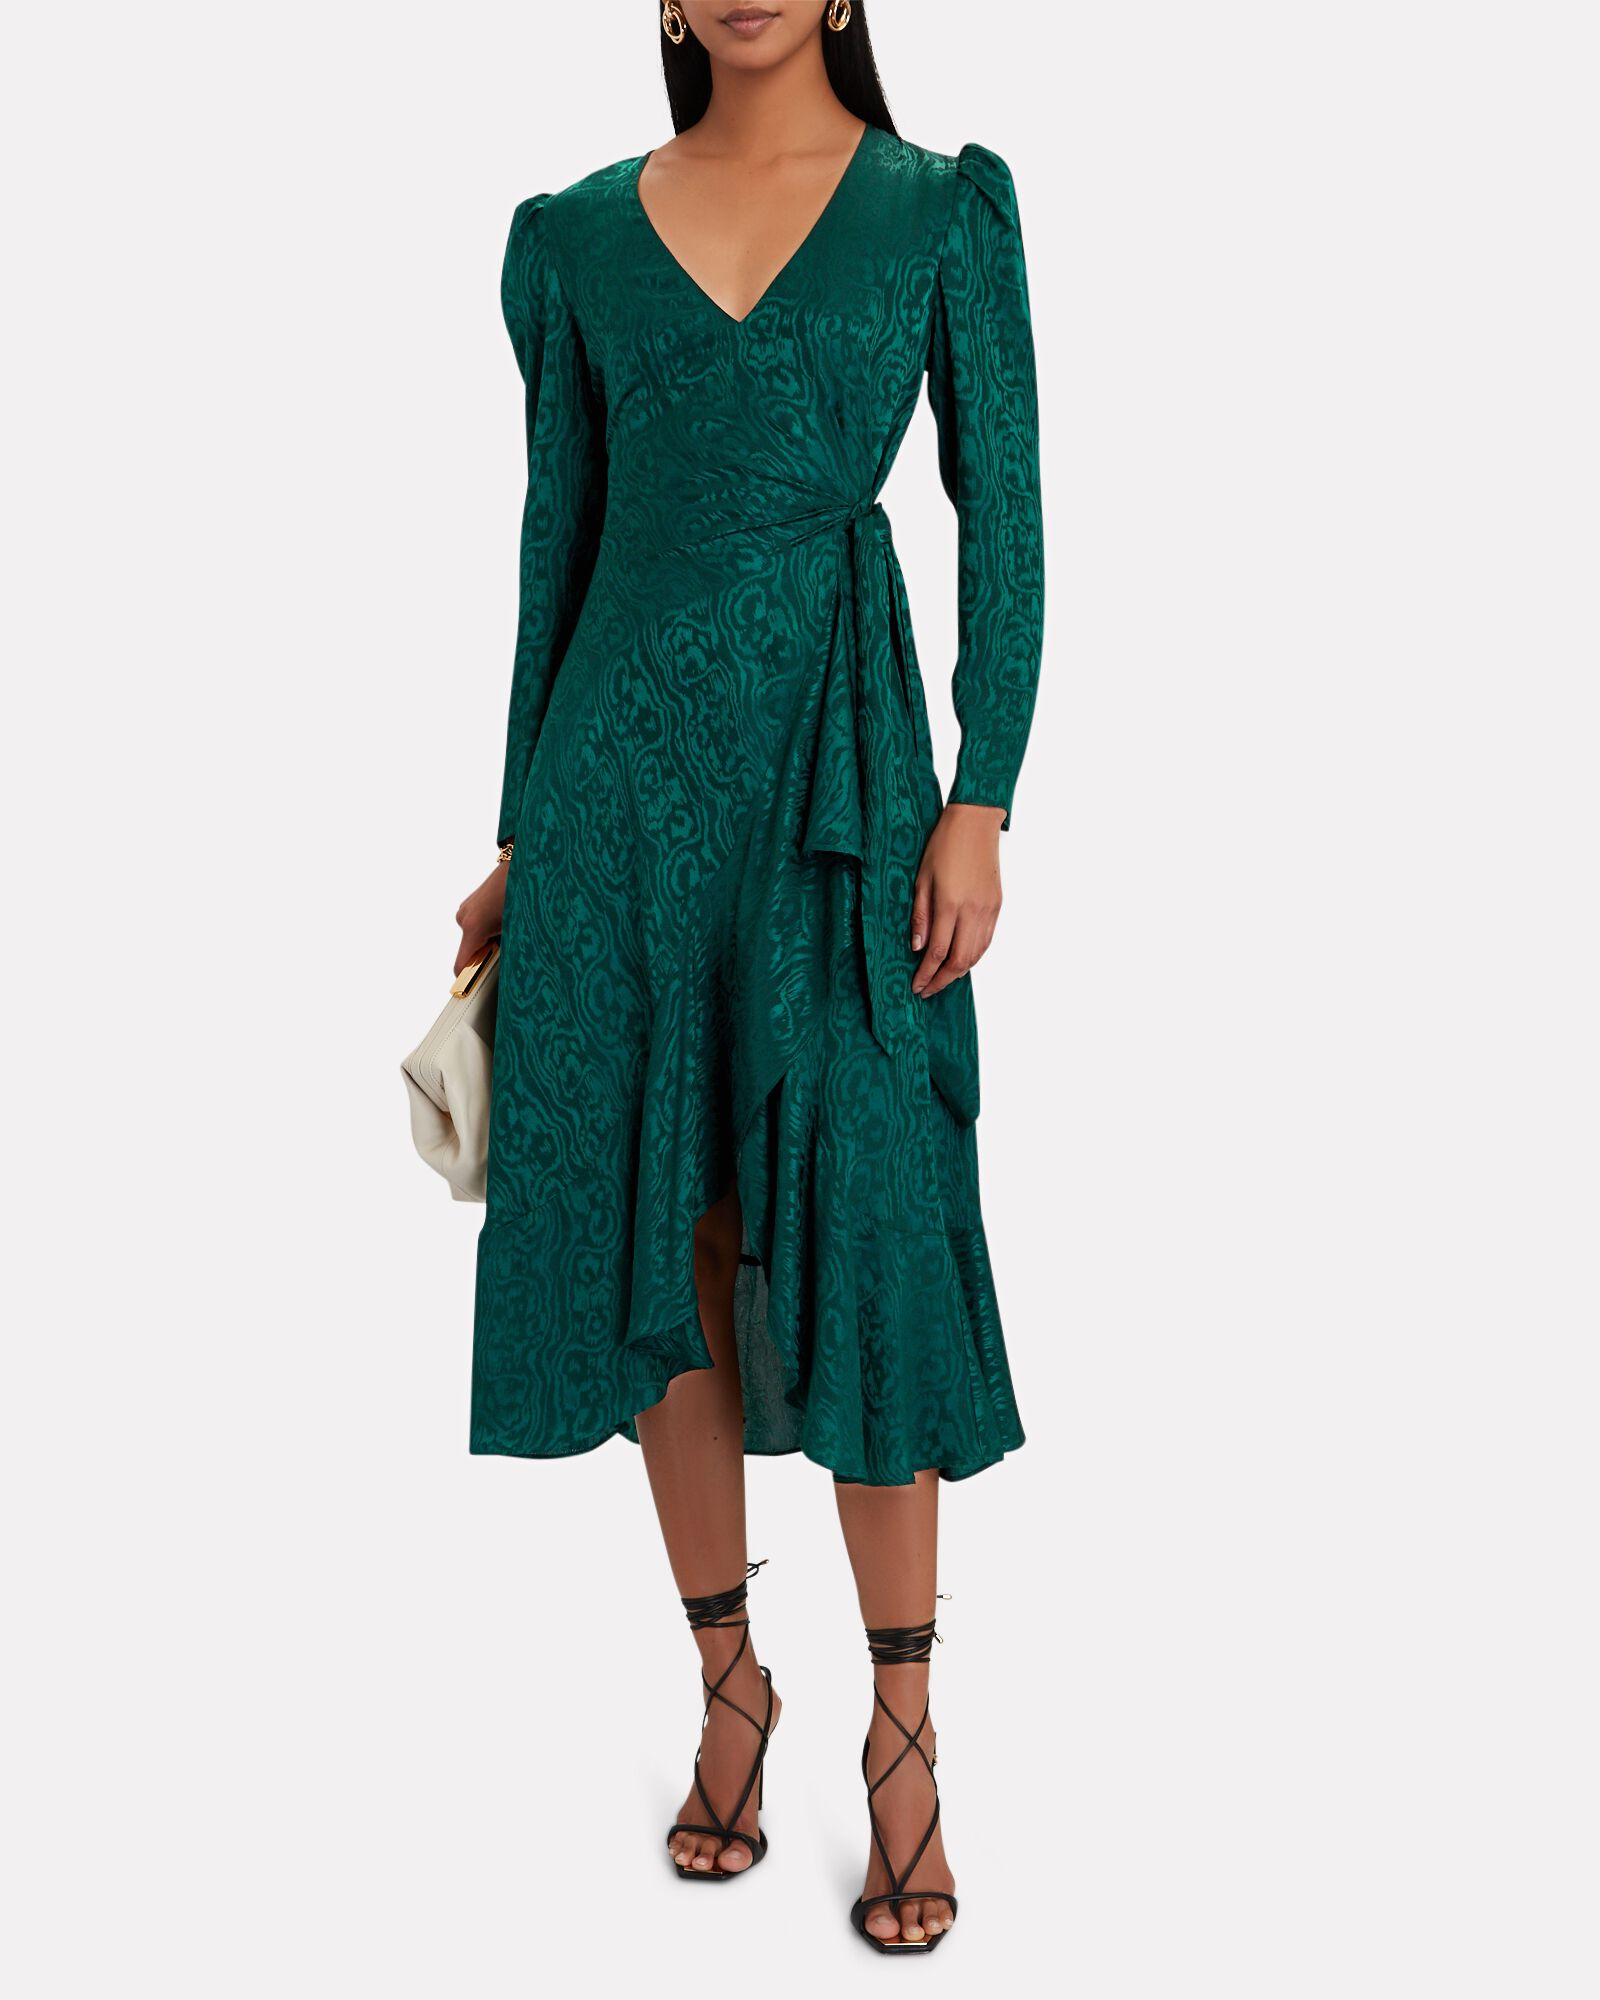 Birdie Moiré Midi Wrap Dress, GREEN, hi-res